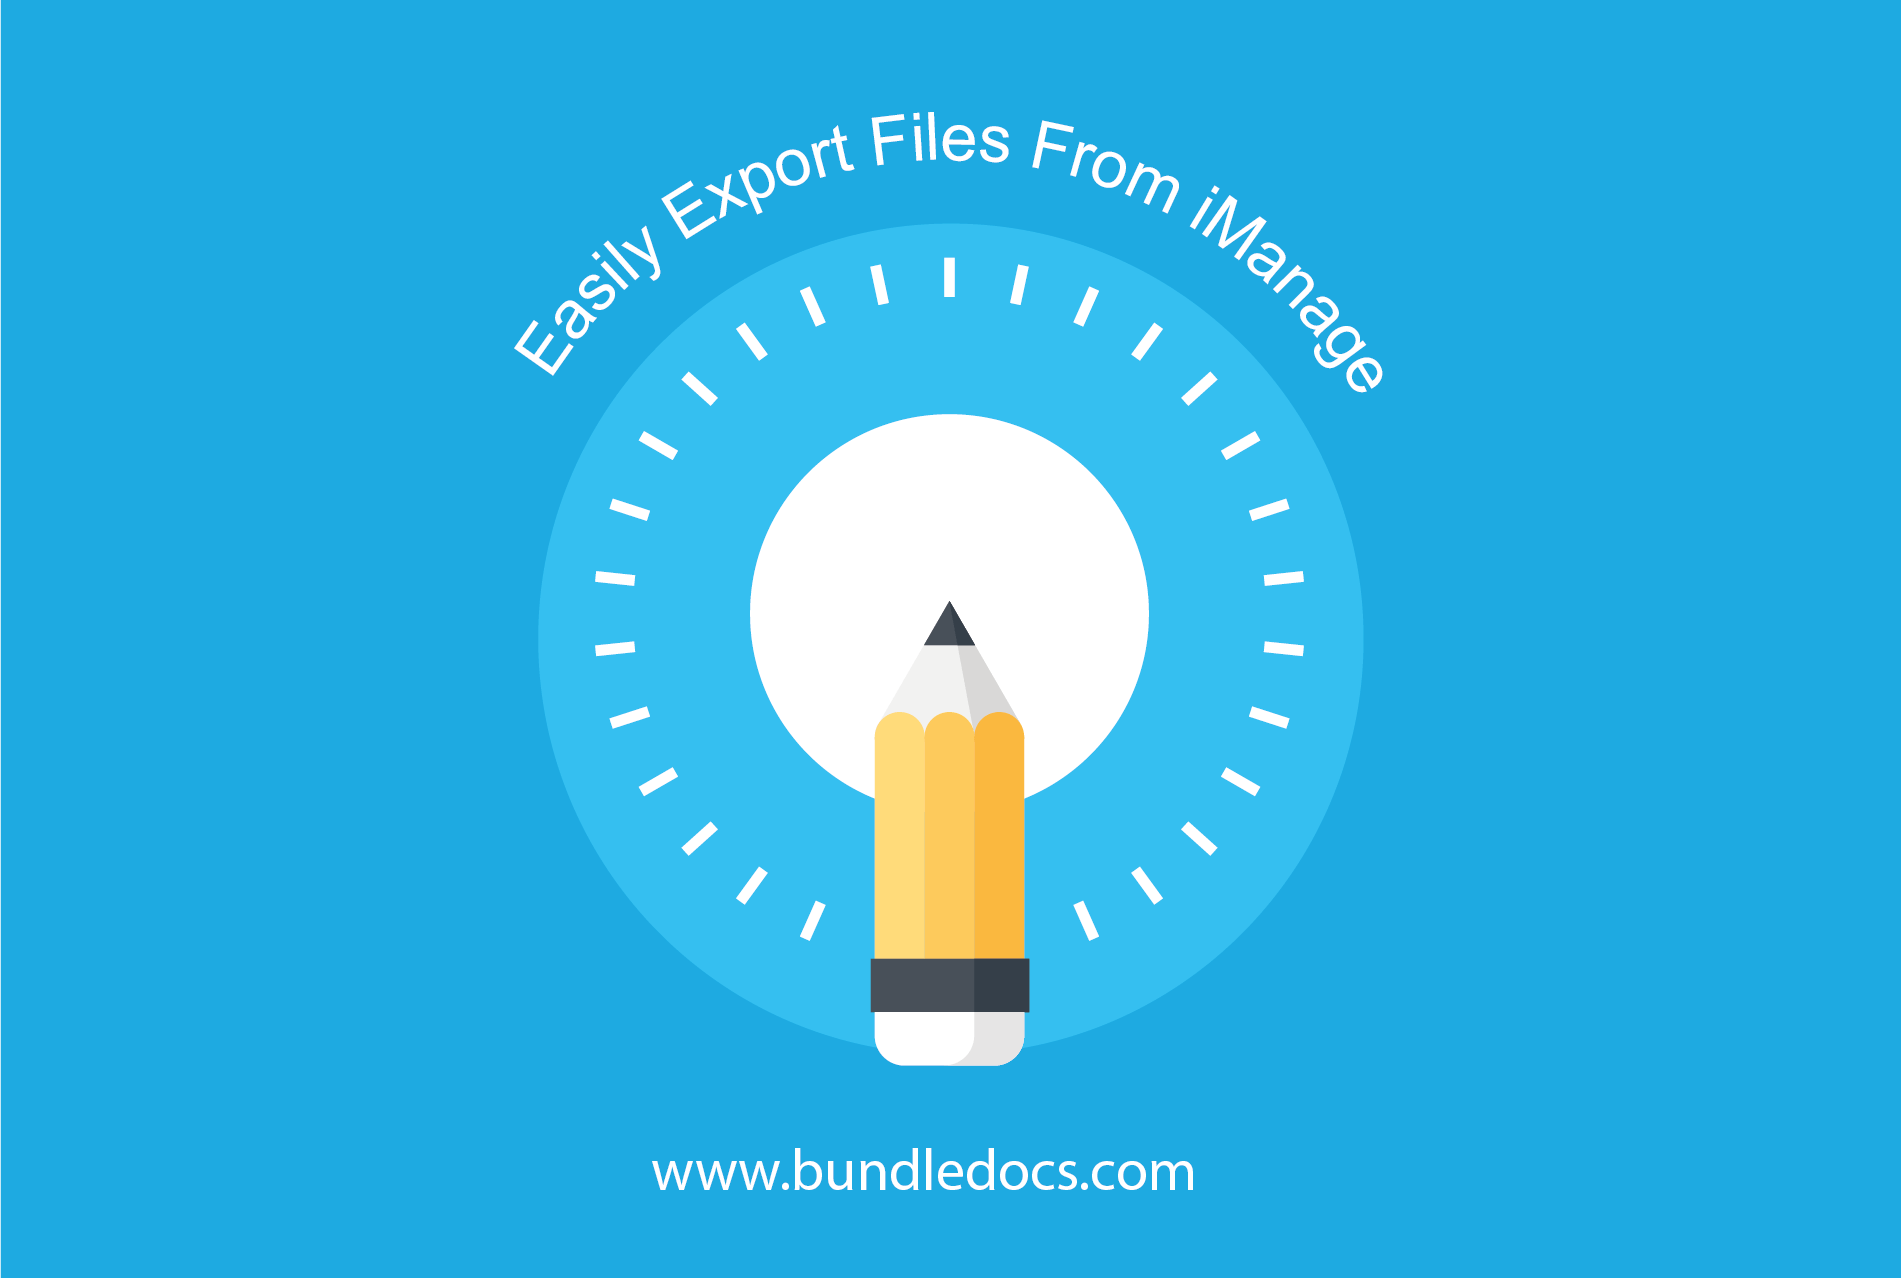 Bulk_Export_Files_From_iManage_Bundledocs_Cloud.png